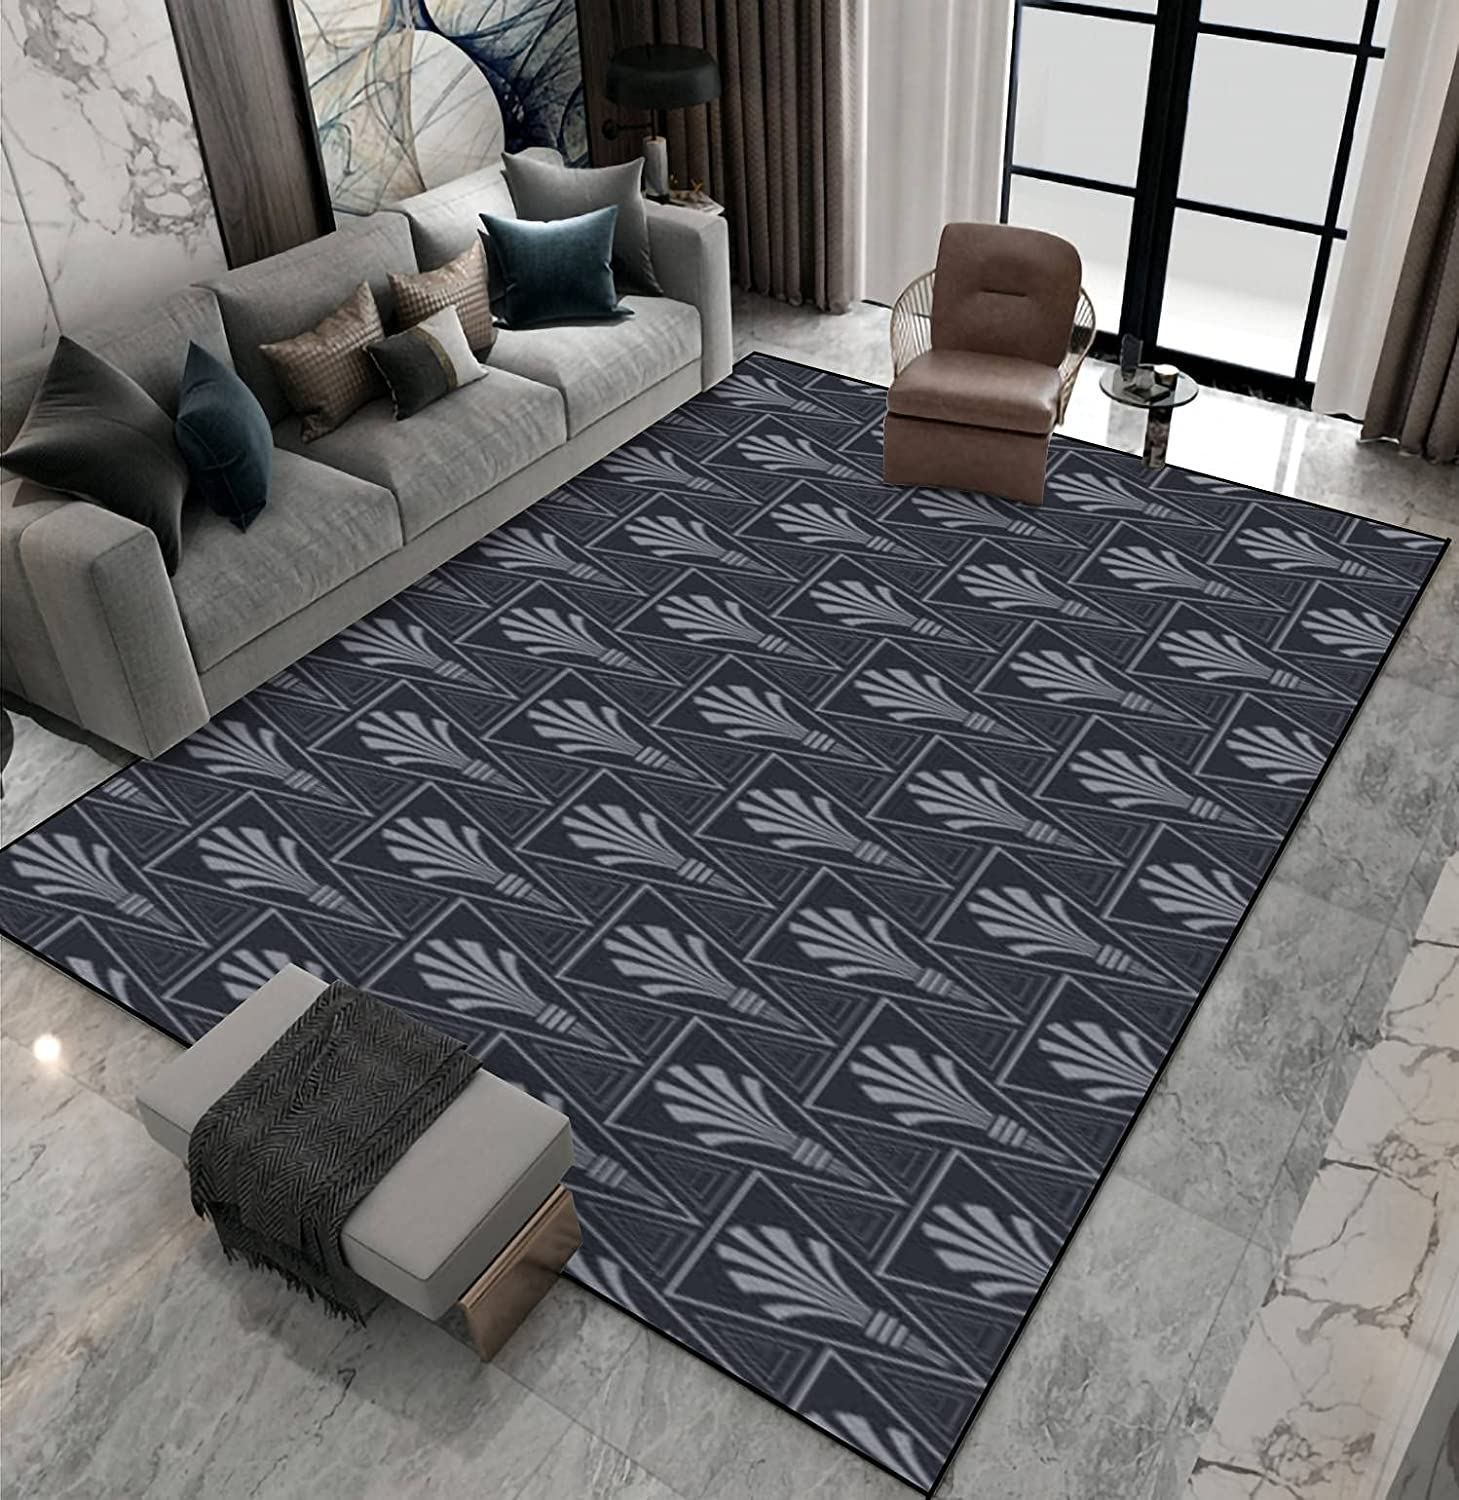 Area Rug Non-Slip Floor Mat Louisville-Jefferson County Mall Clearance SALE Limited time Modern Background Pattern with Geome